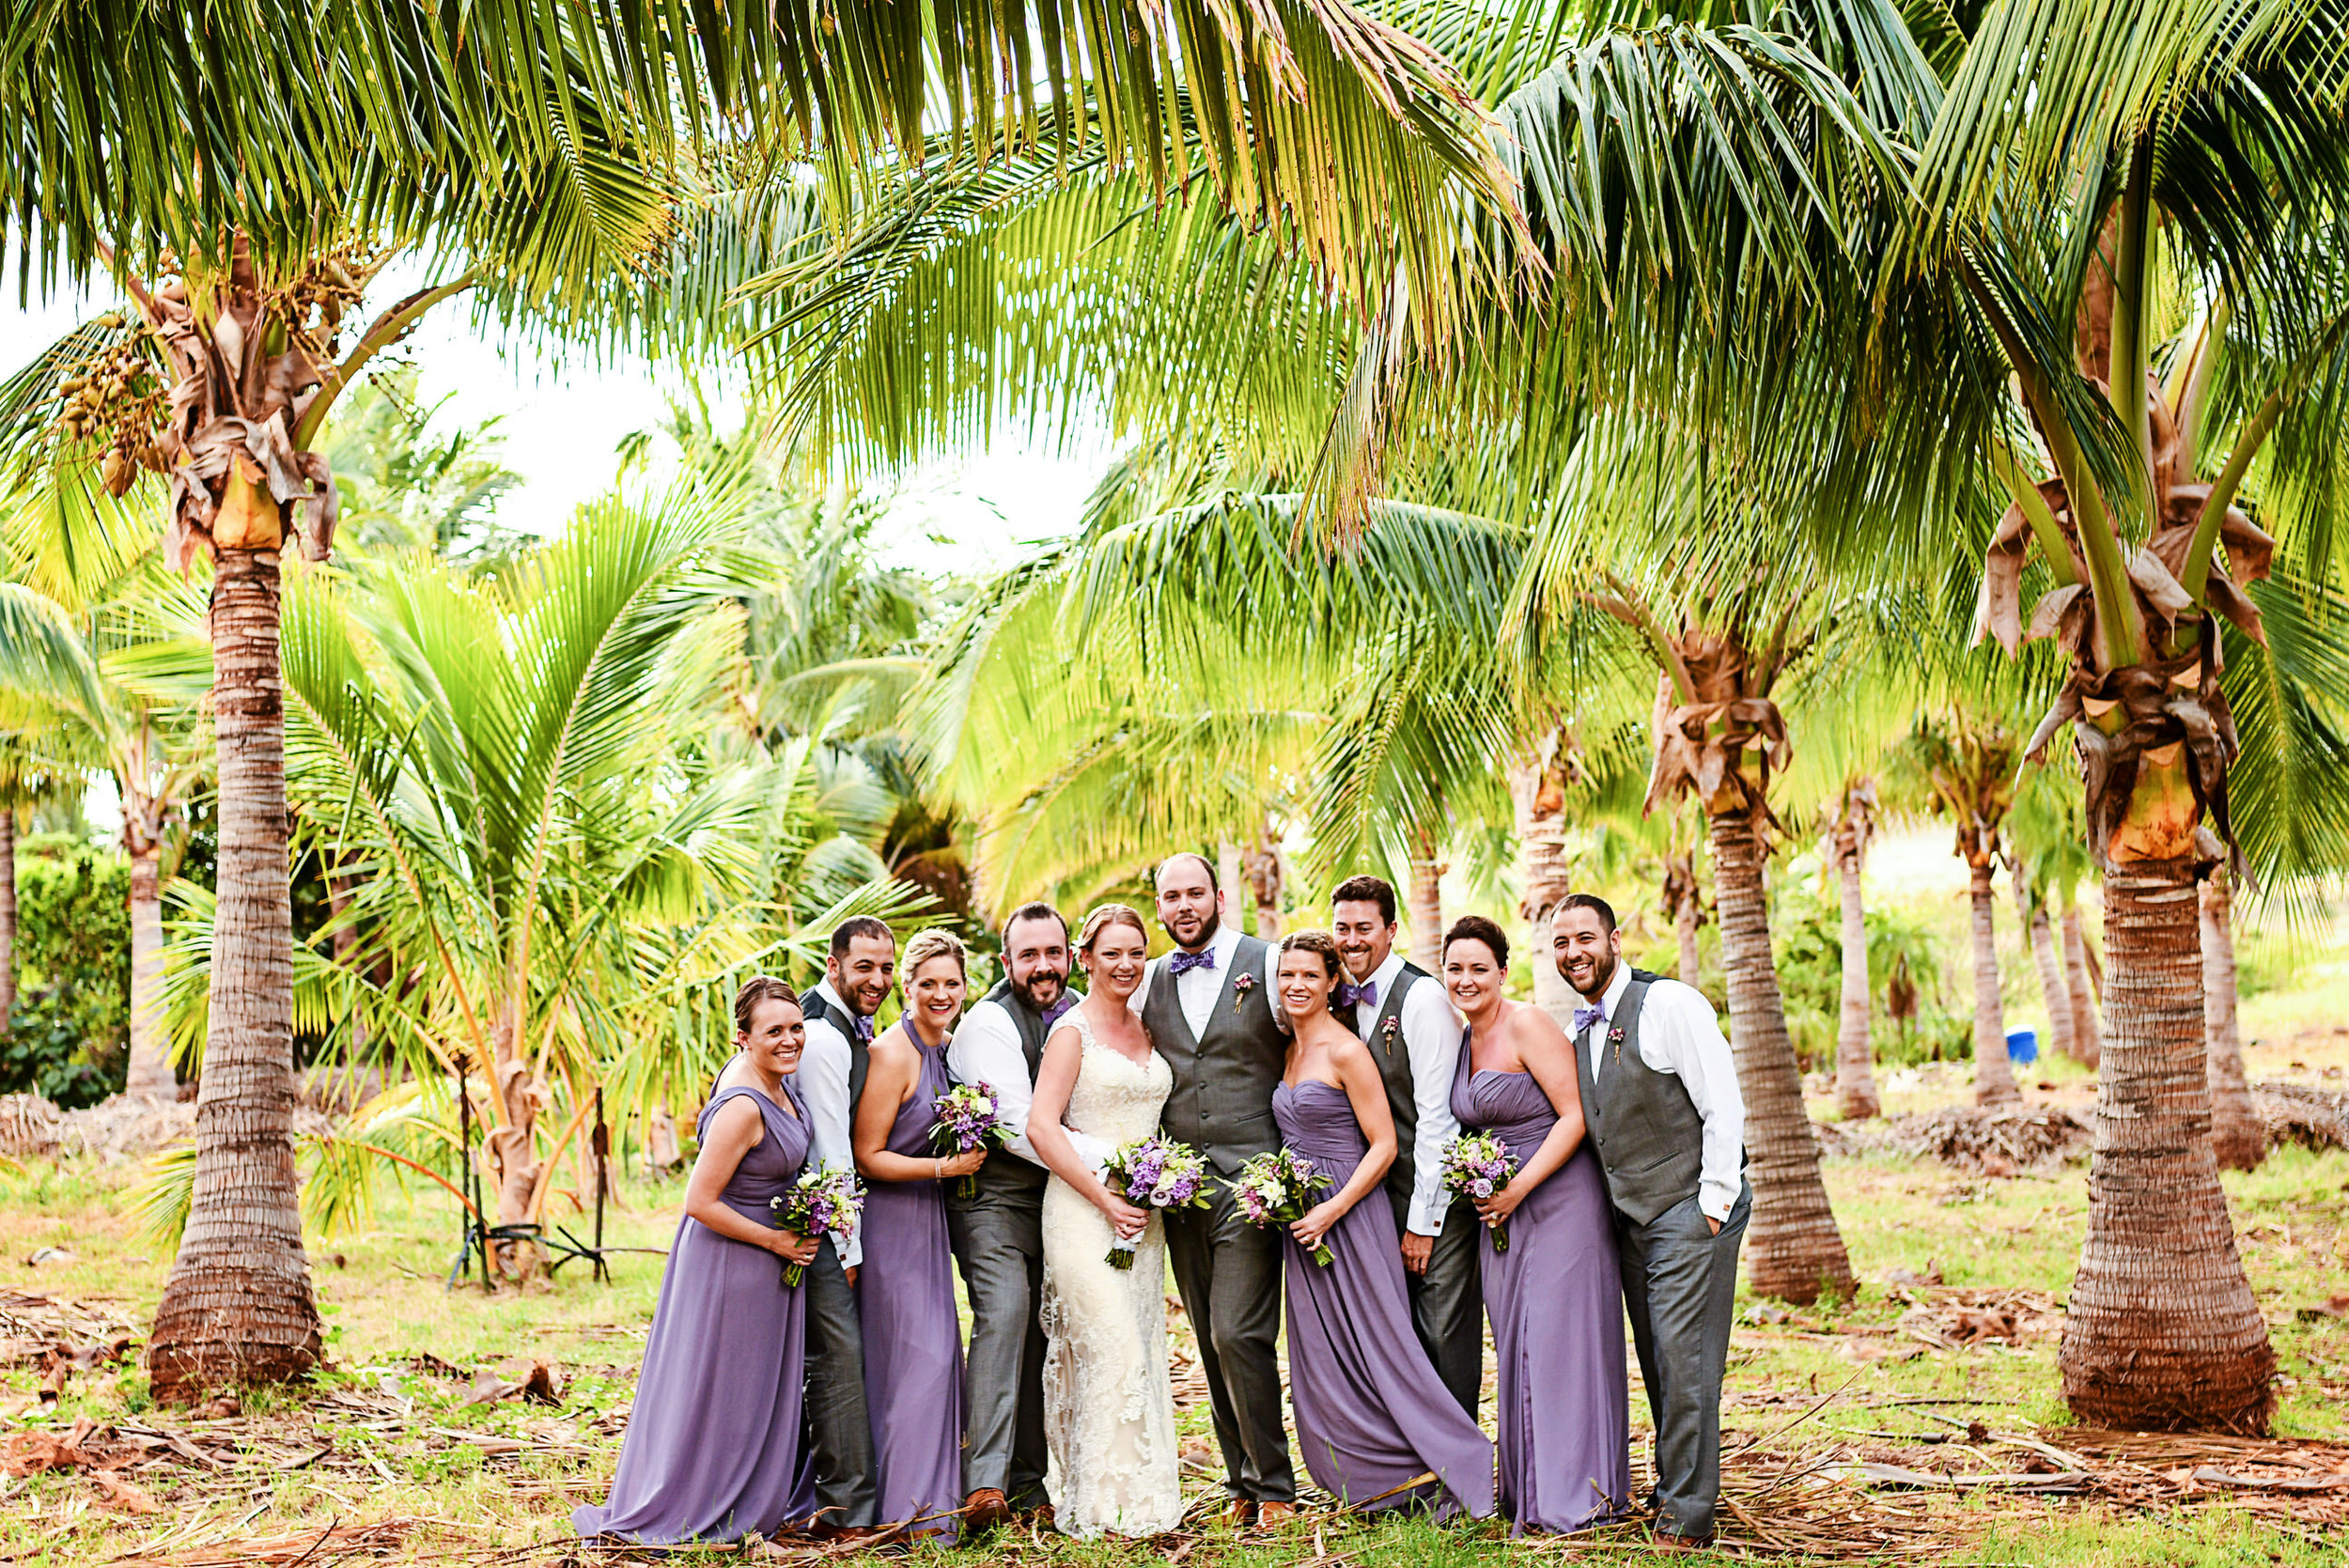 HawaiiWedding-Lisa&Scott-WeddingParty-Family-329.jpg